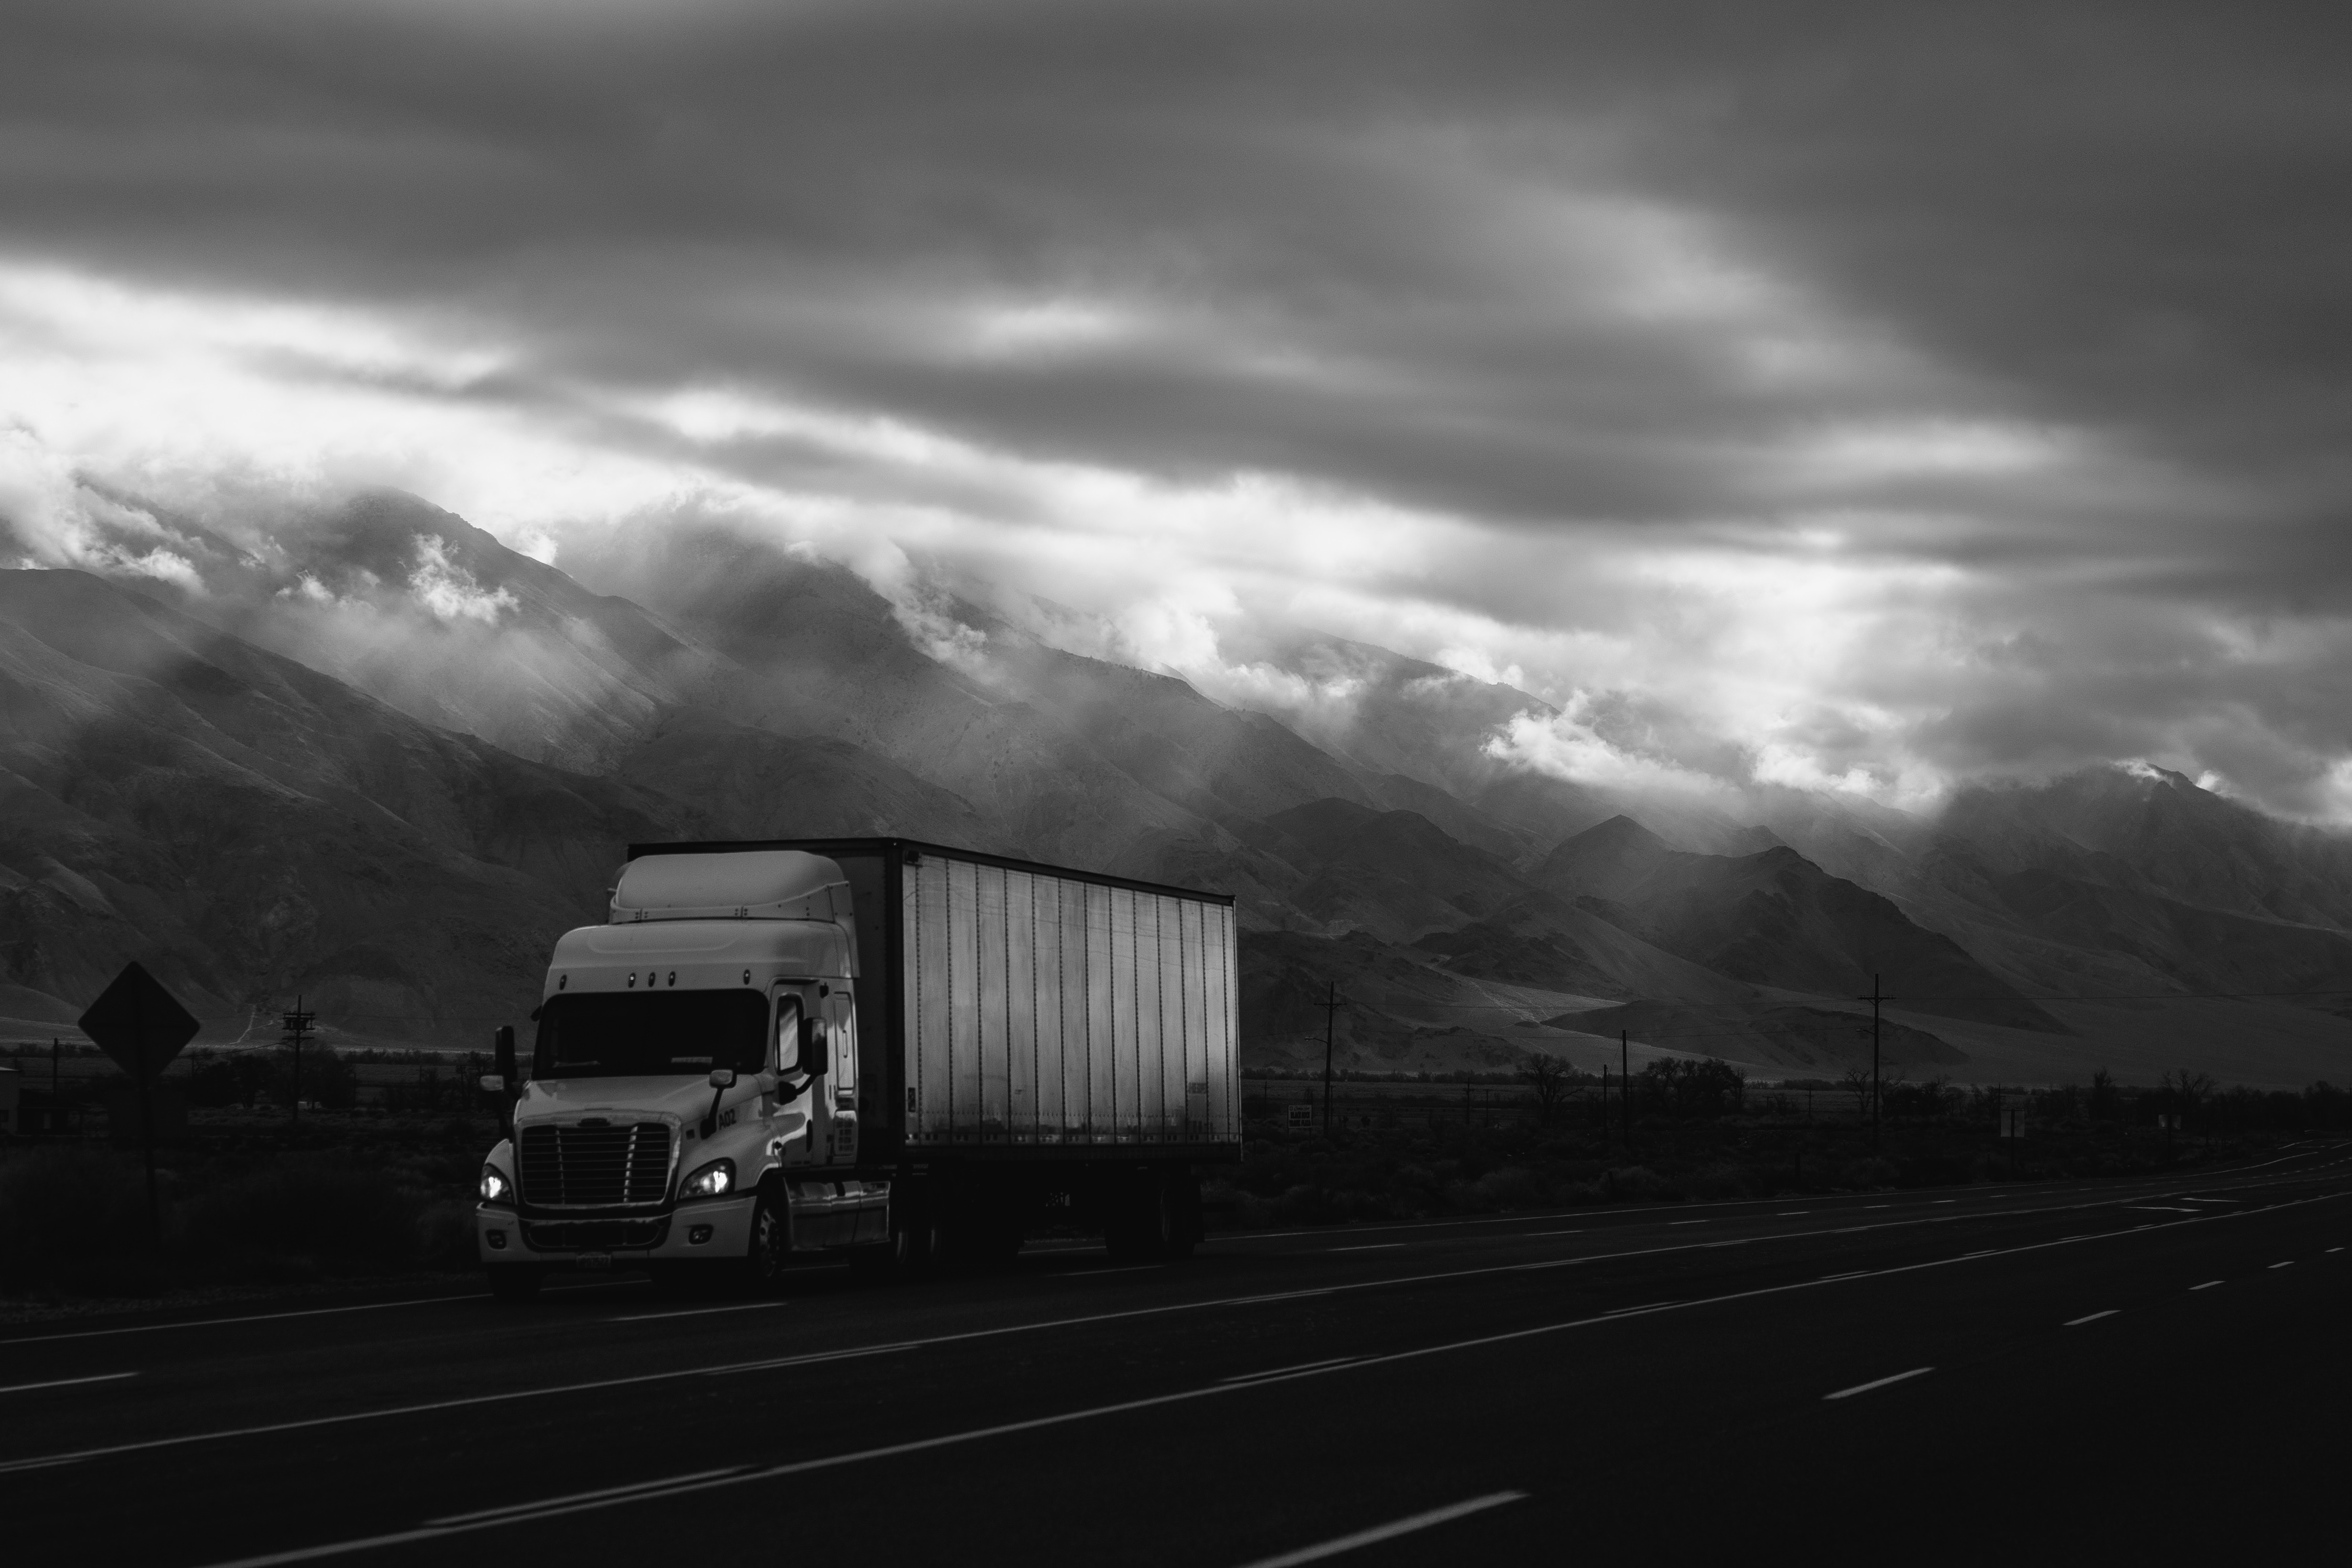 A black and white photo of a truck on the road.